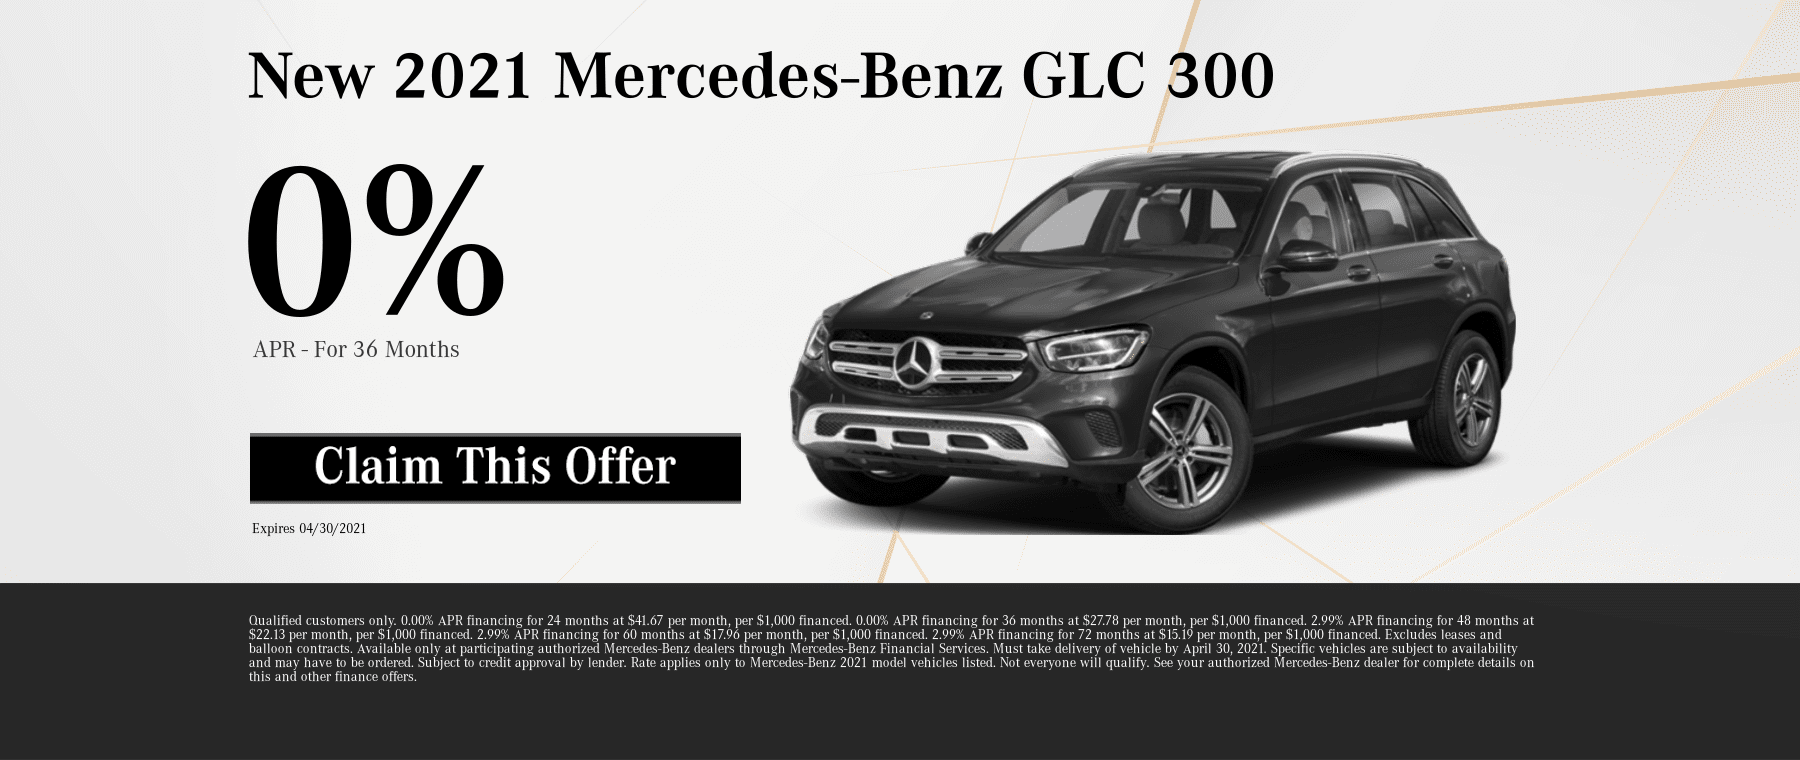 2021-Mercedes-Benz-GLC 300-SUV-16